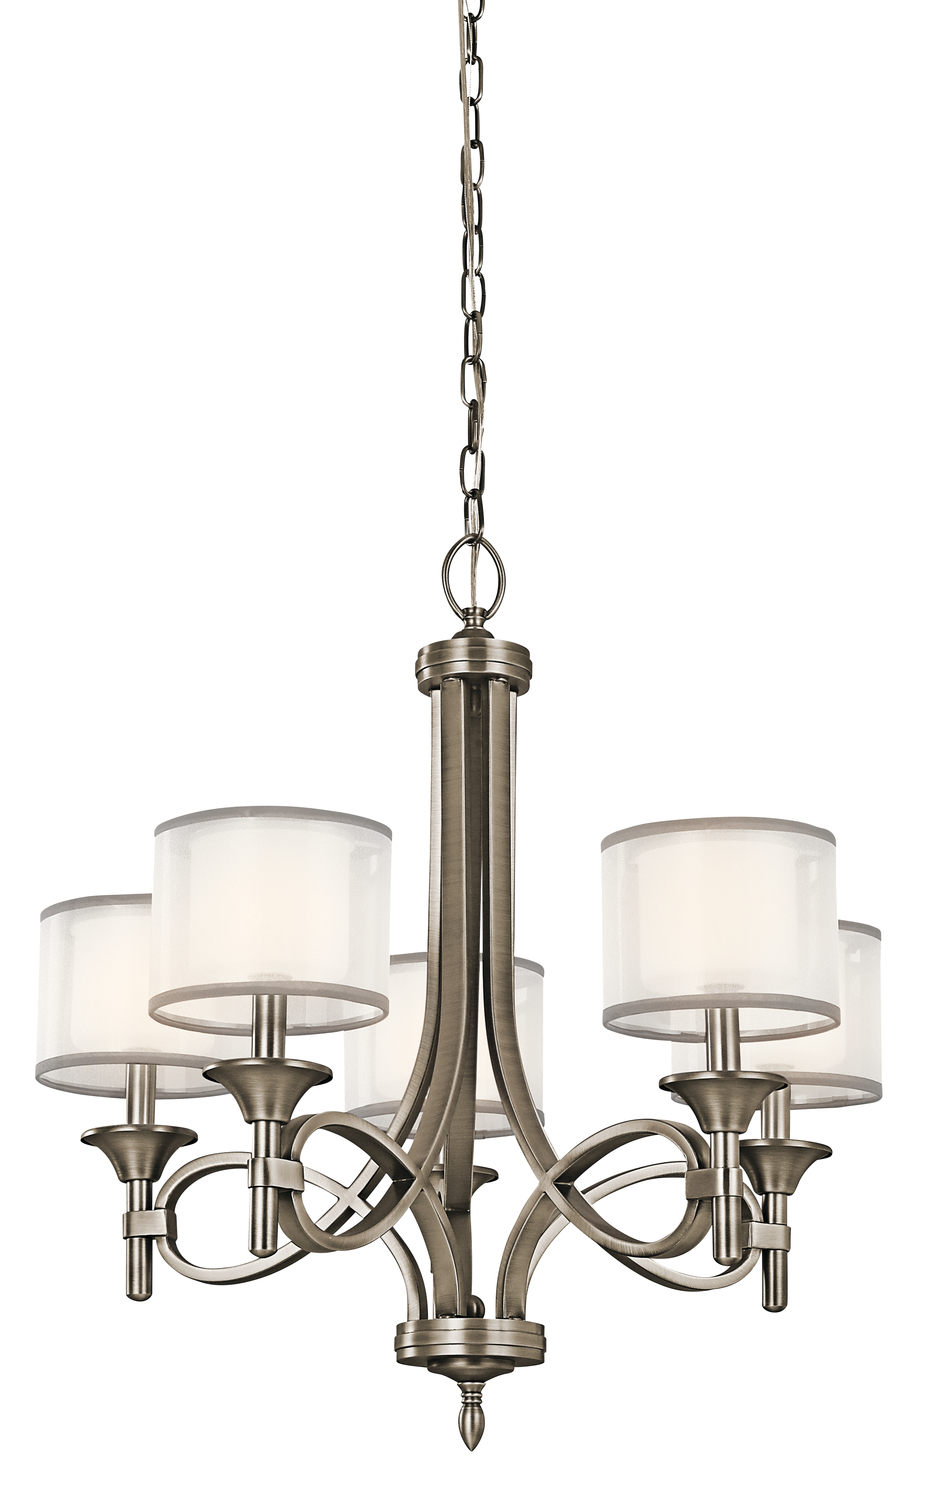 Kirby Risk in Lafayette, Indiana, United States, Kichler 42381AP, Chandelier 5Lt, Lacey